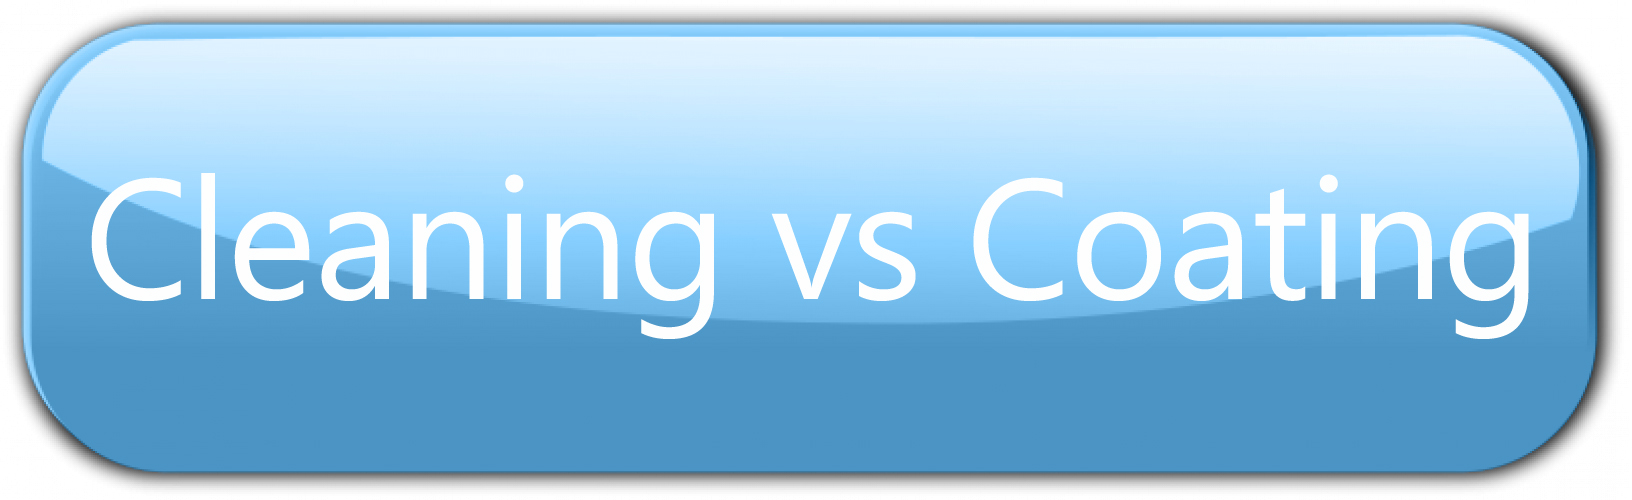 Cleaning vs Coating button